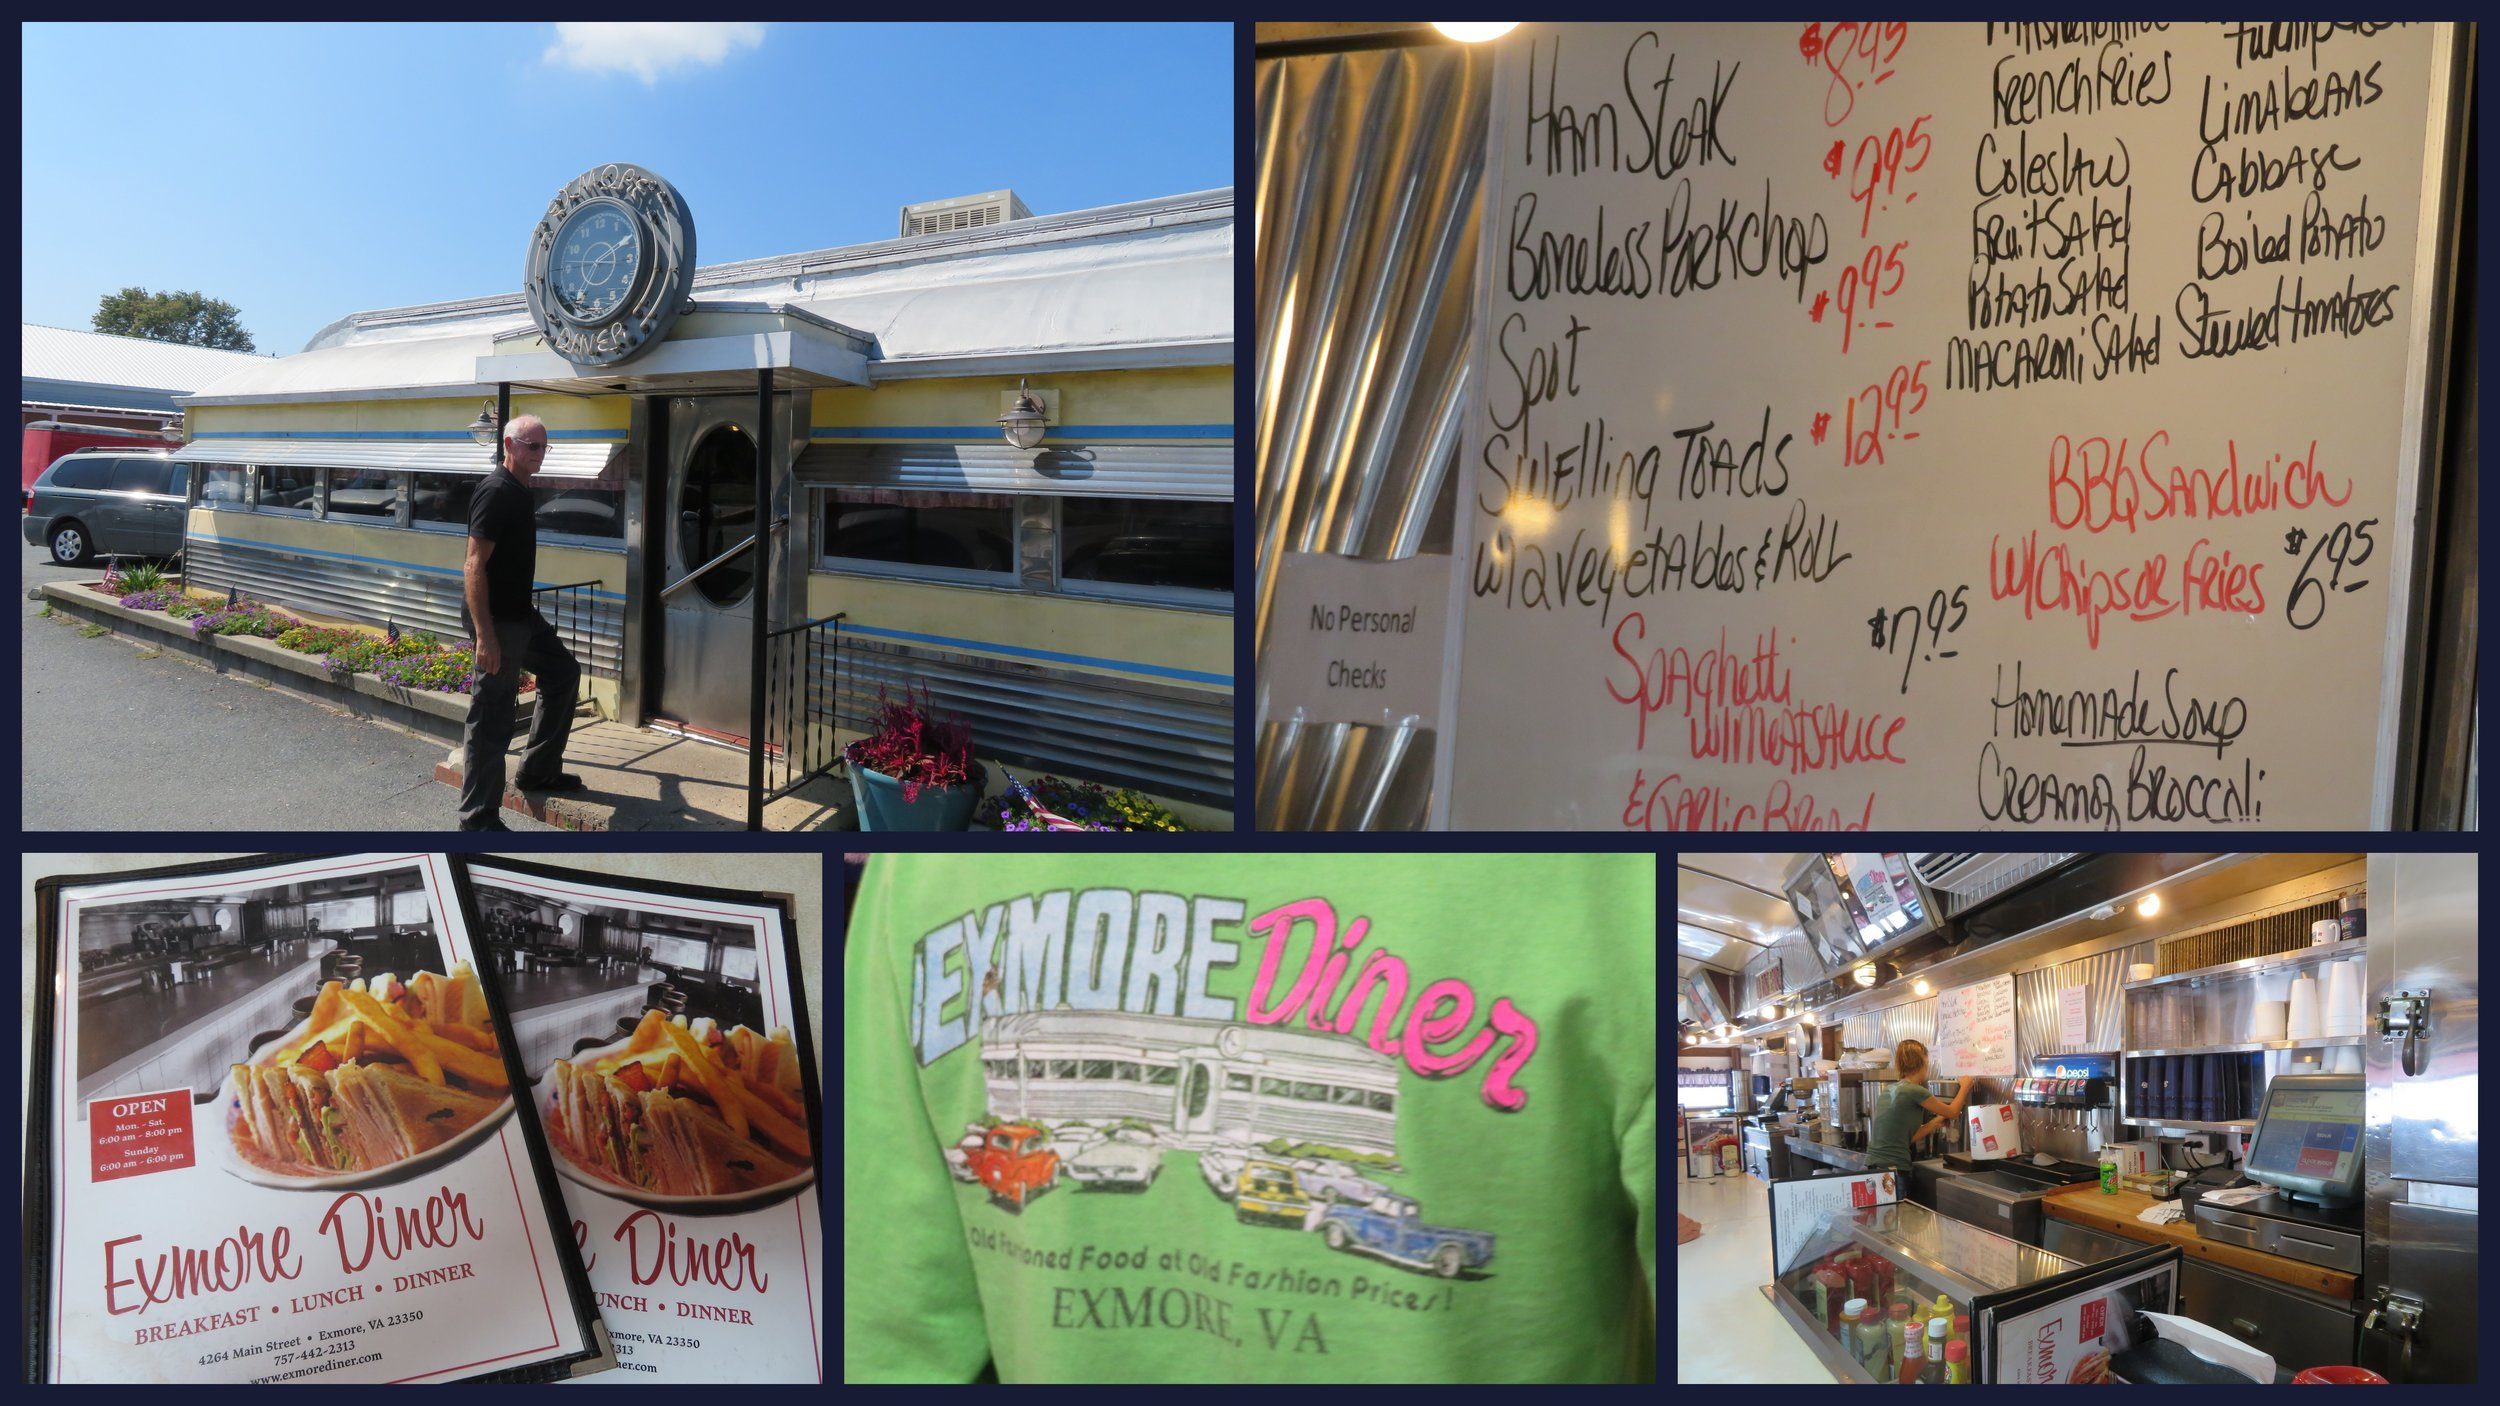 Lunch at the iconic Exmore Diner. What the heck are  swelling toads ???